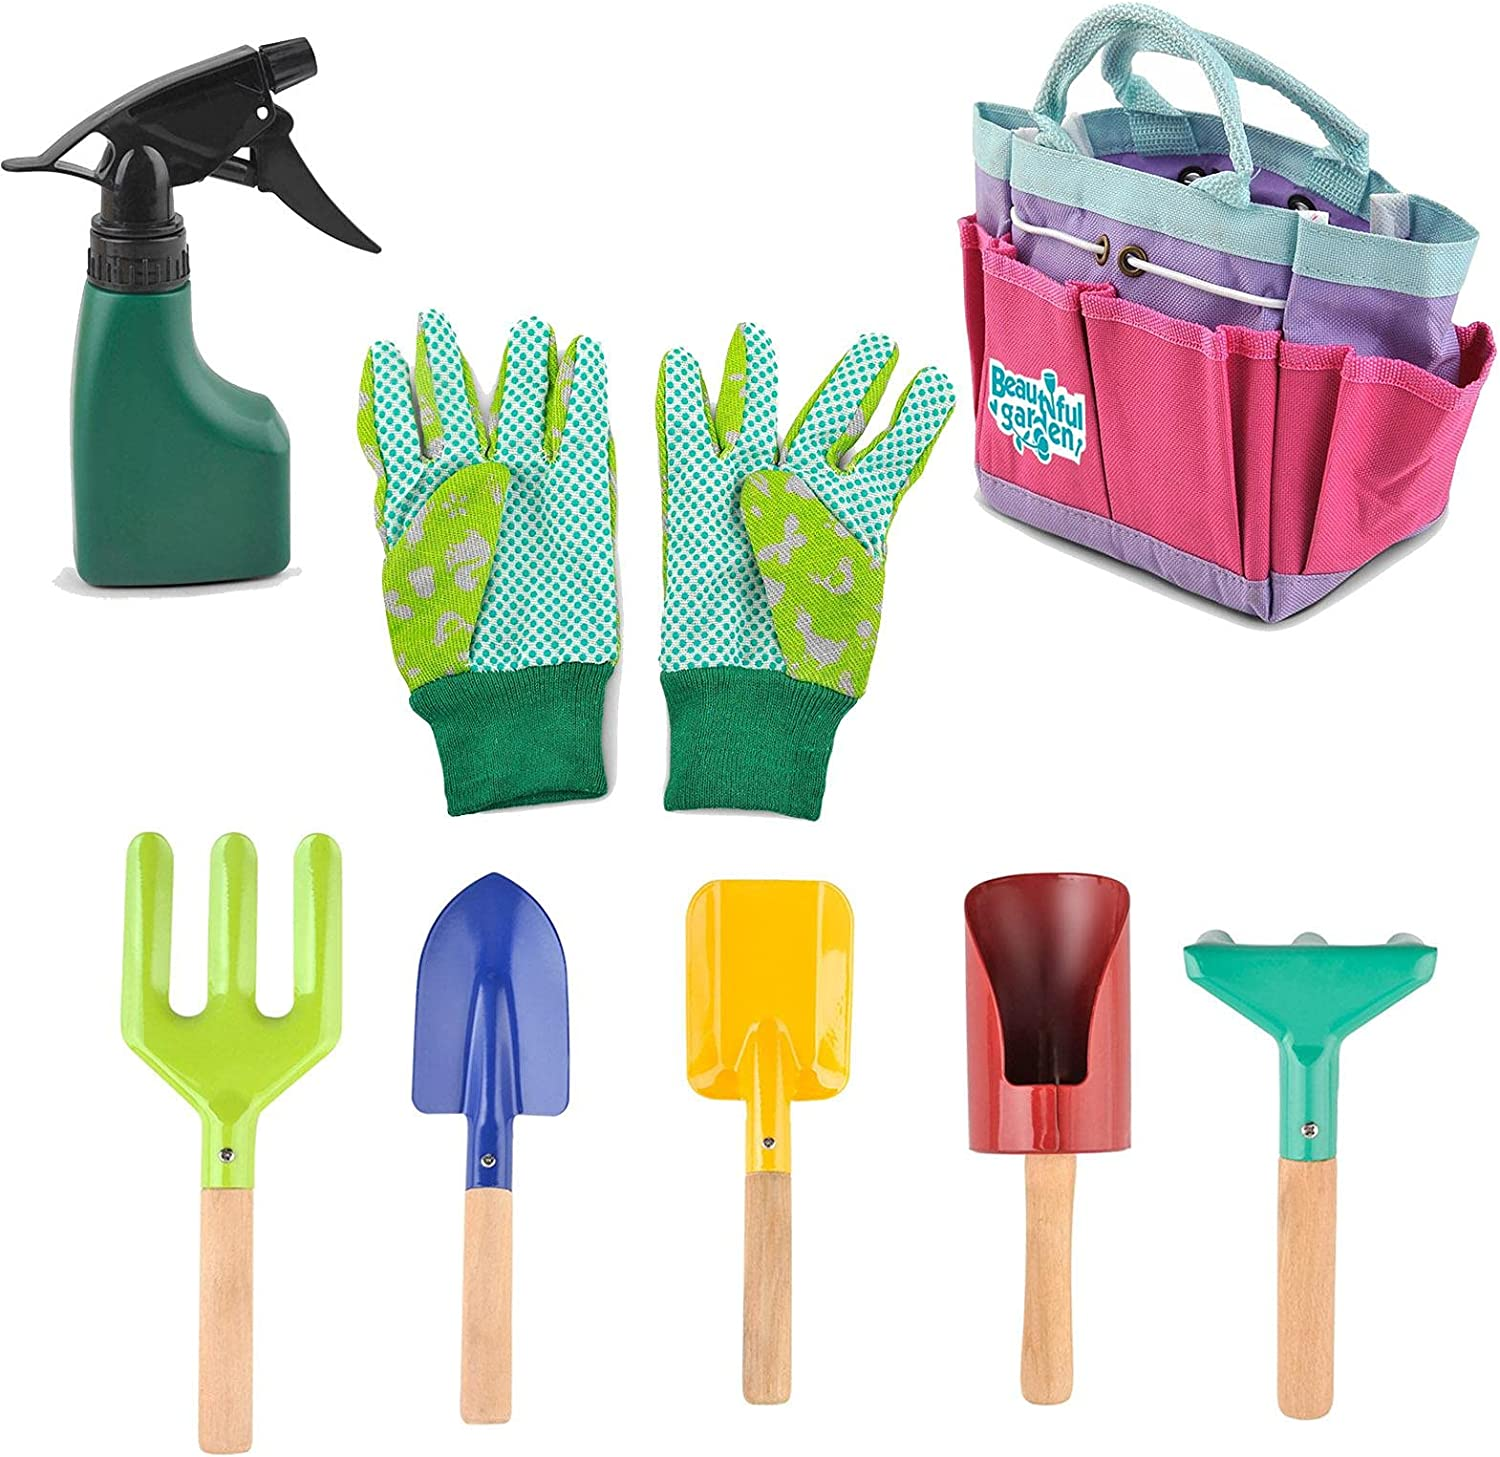 Excellence Mona43Henry Kids Gardening Tools Set Garden for Bag 2021 autumn and winter new G